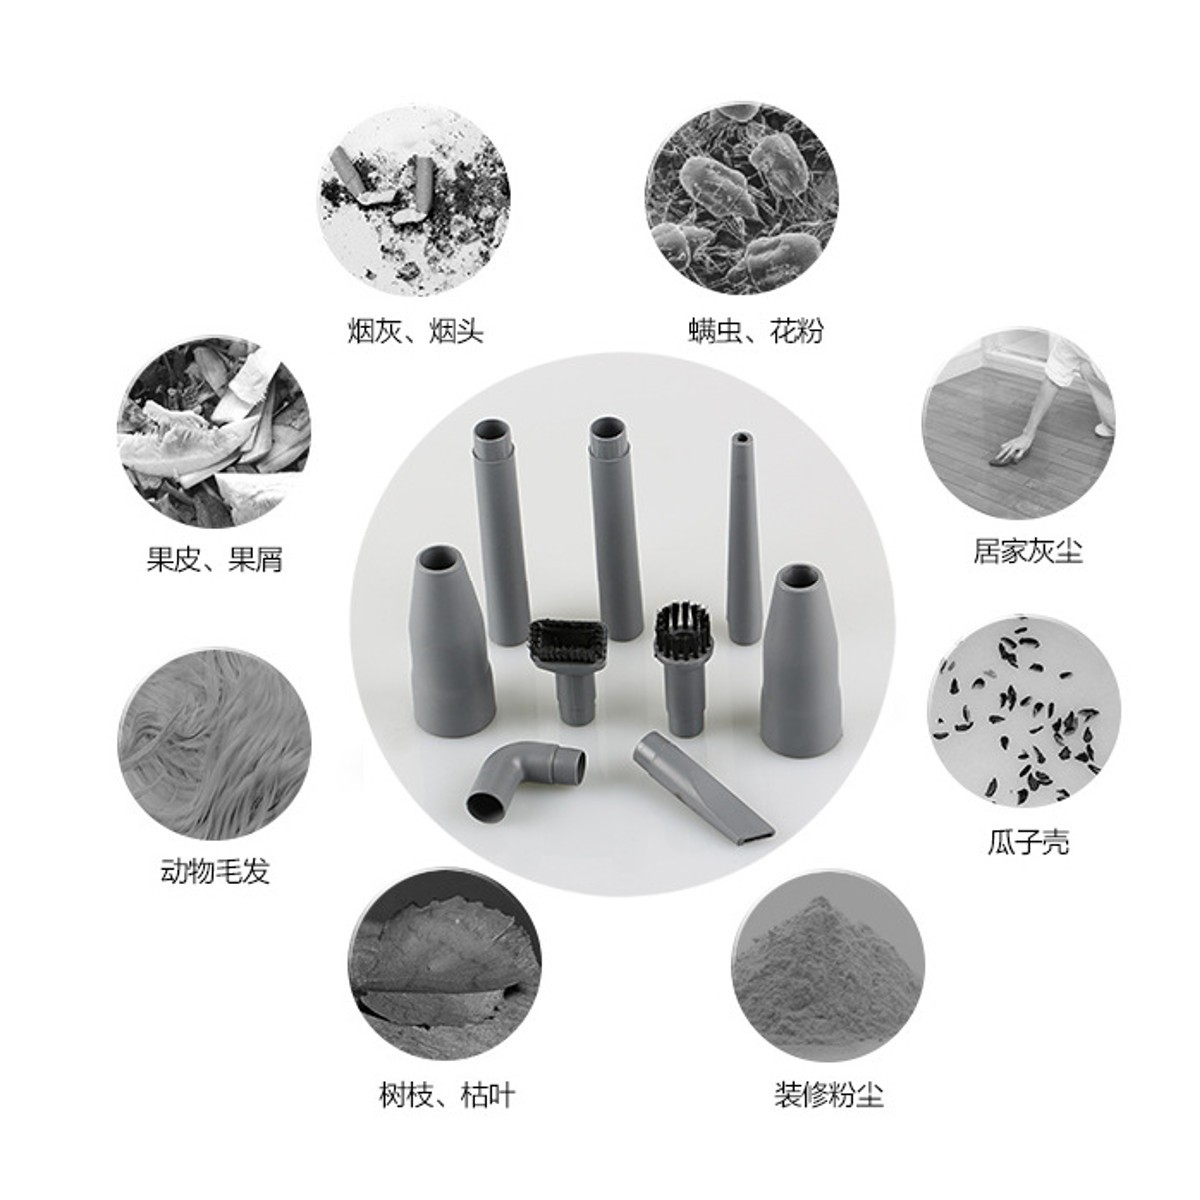 9Pcs Universal Attachments Tools Kit For Vacuum Cleaner Parts Accessories Replacement